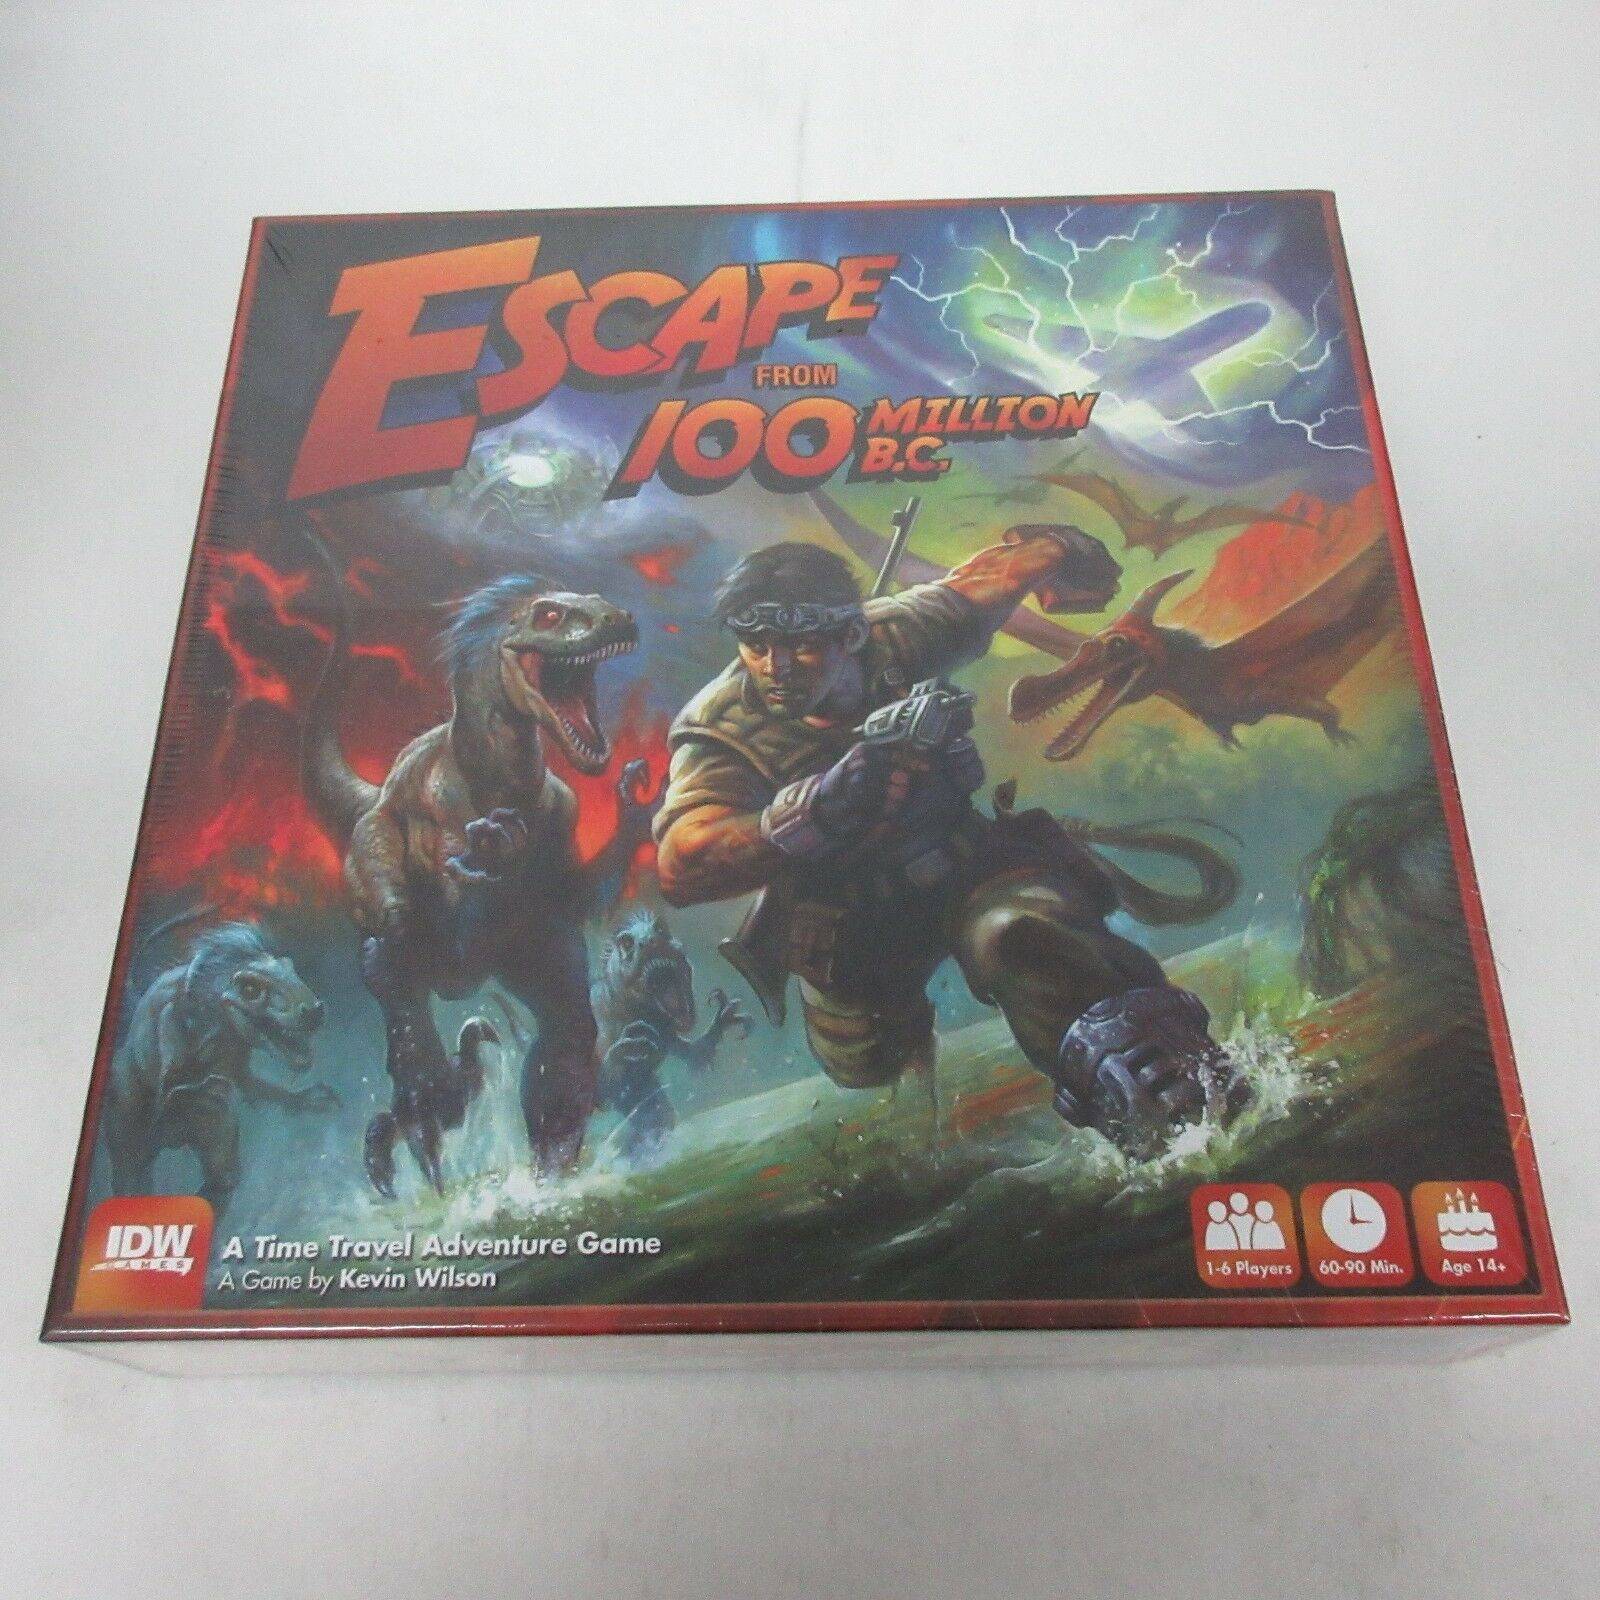 IDW Games Escape from 100 Million B.C. Board Game NEW